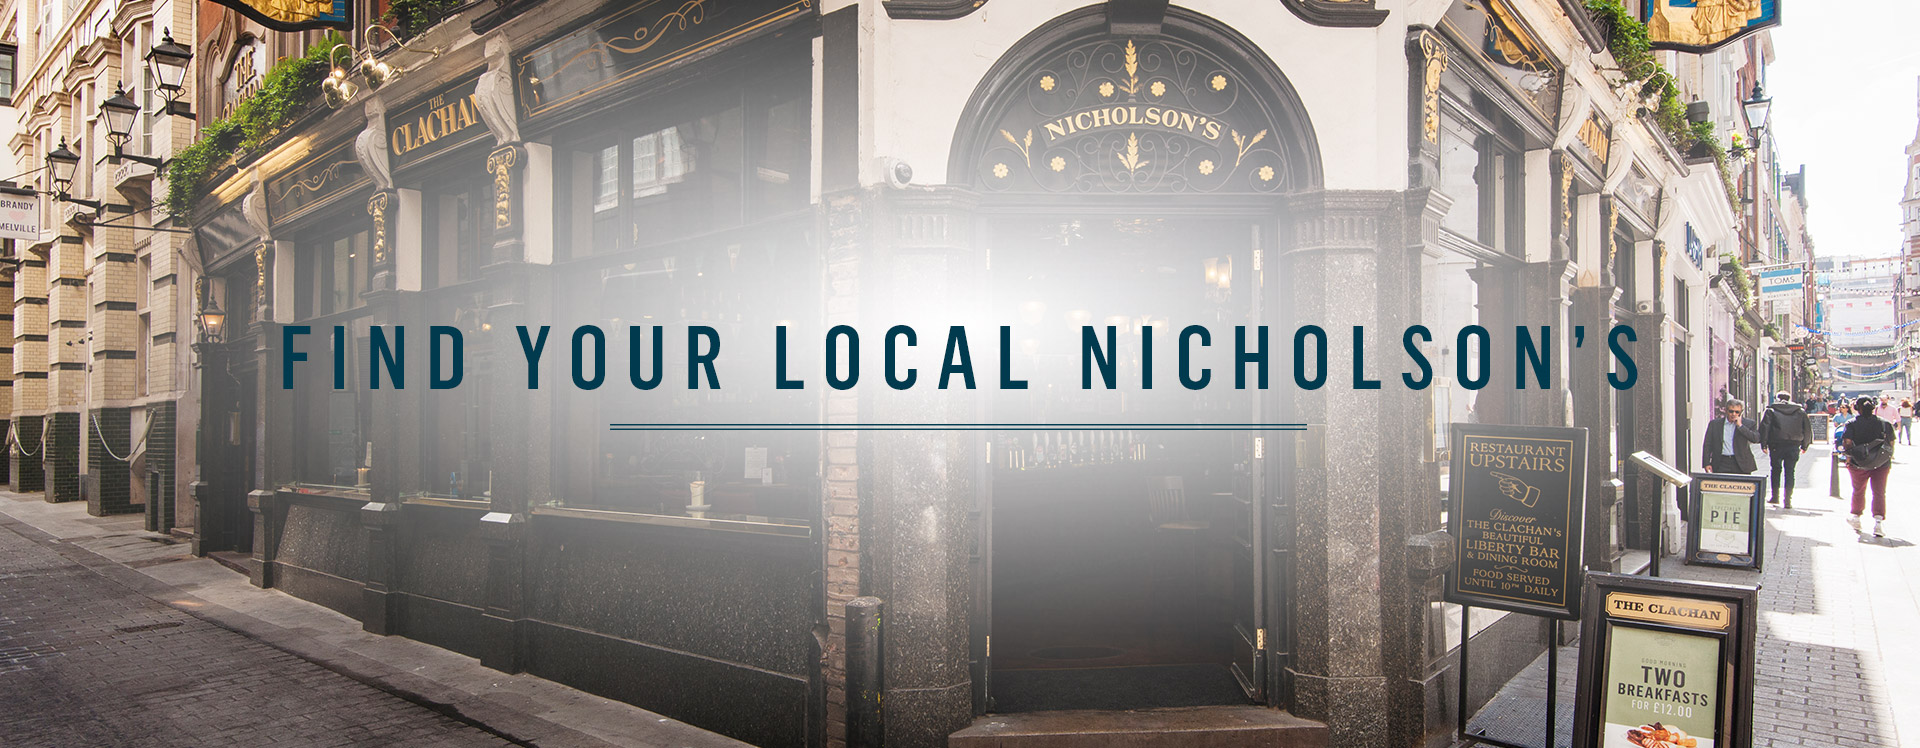 Find your local Nicholson's